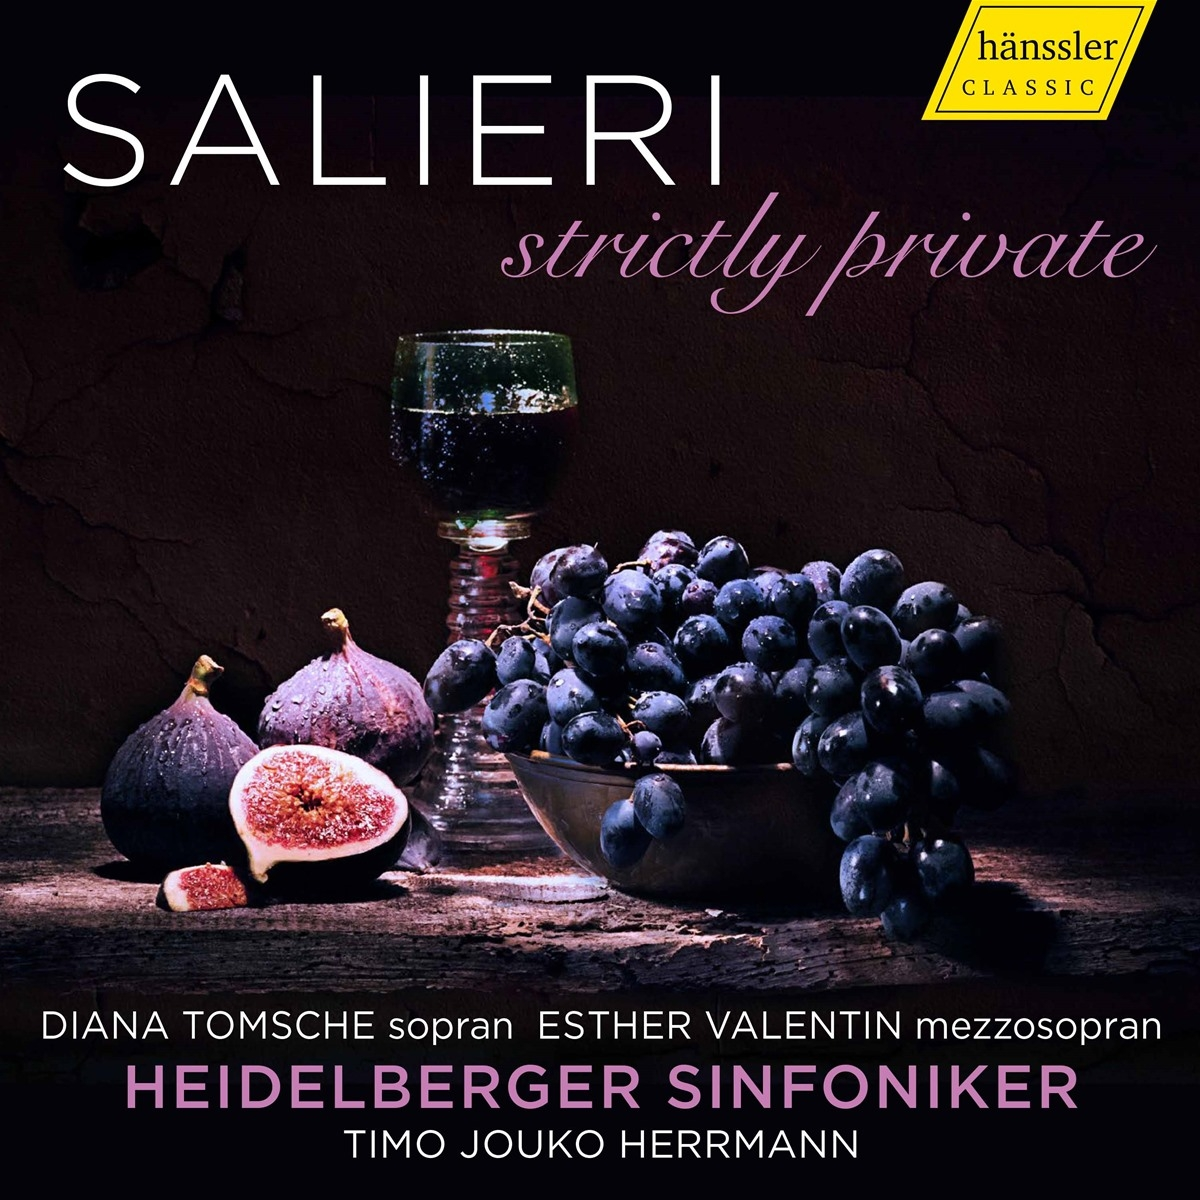 Salieri-strictly private